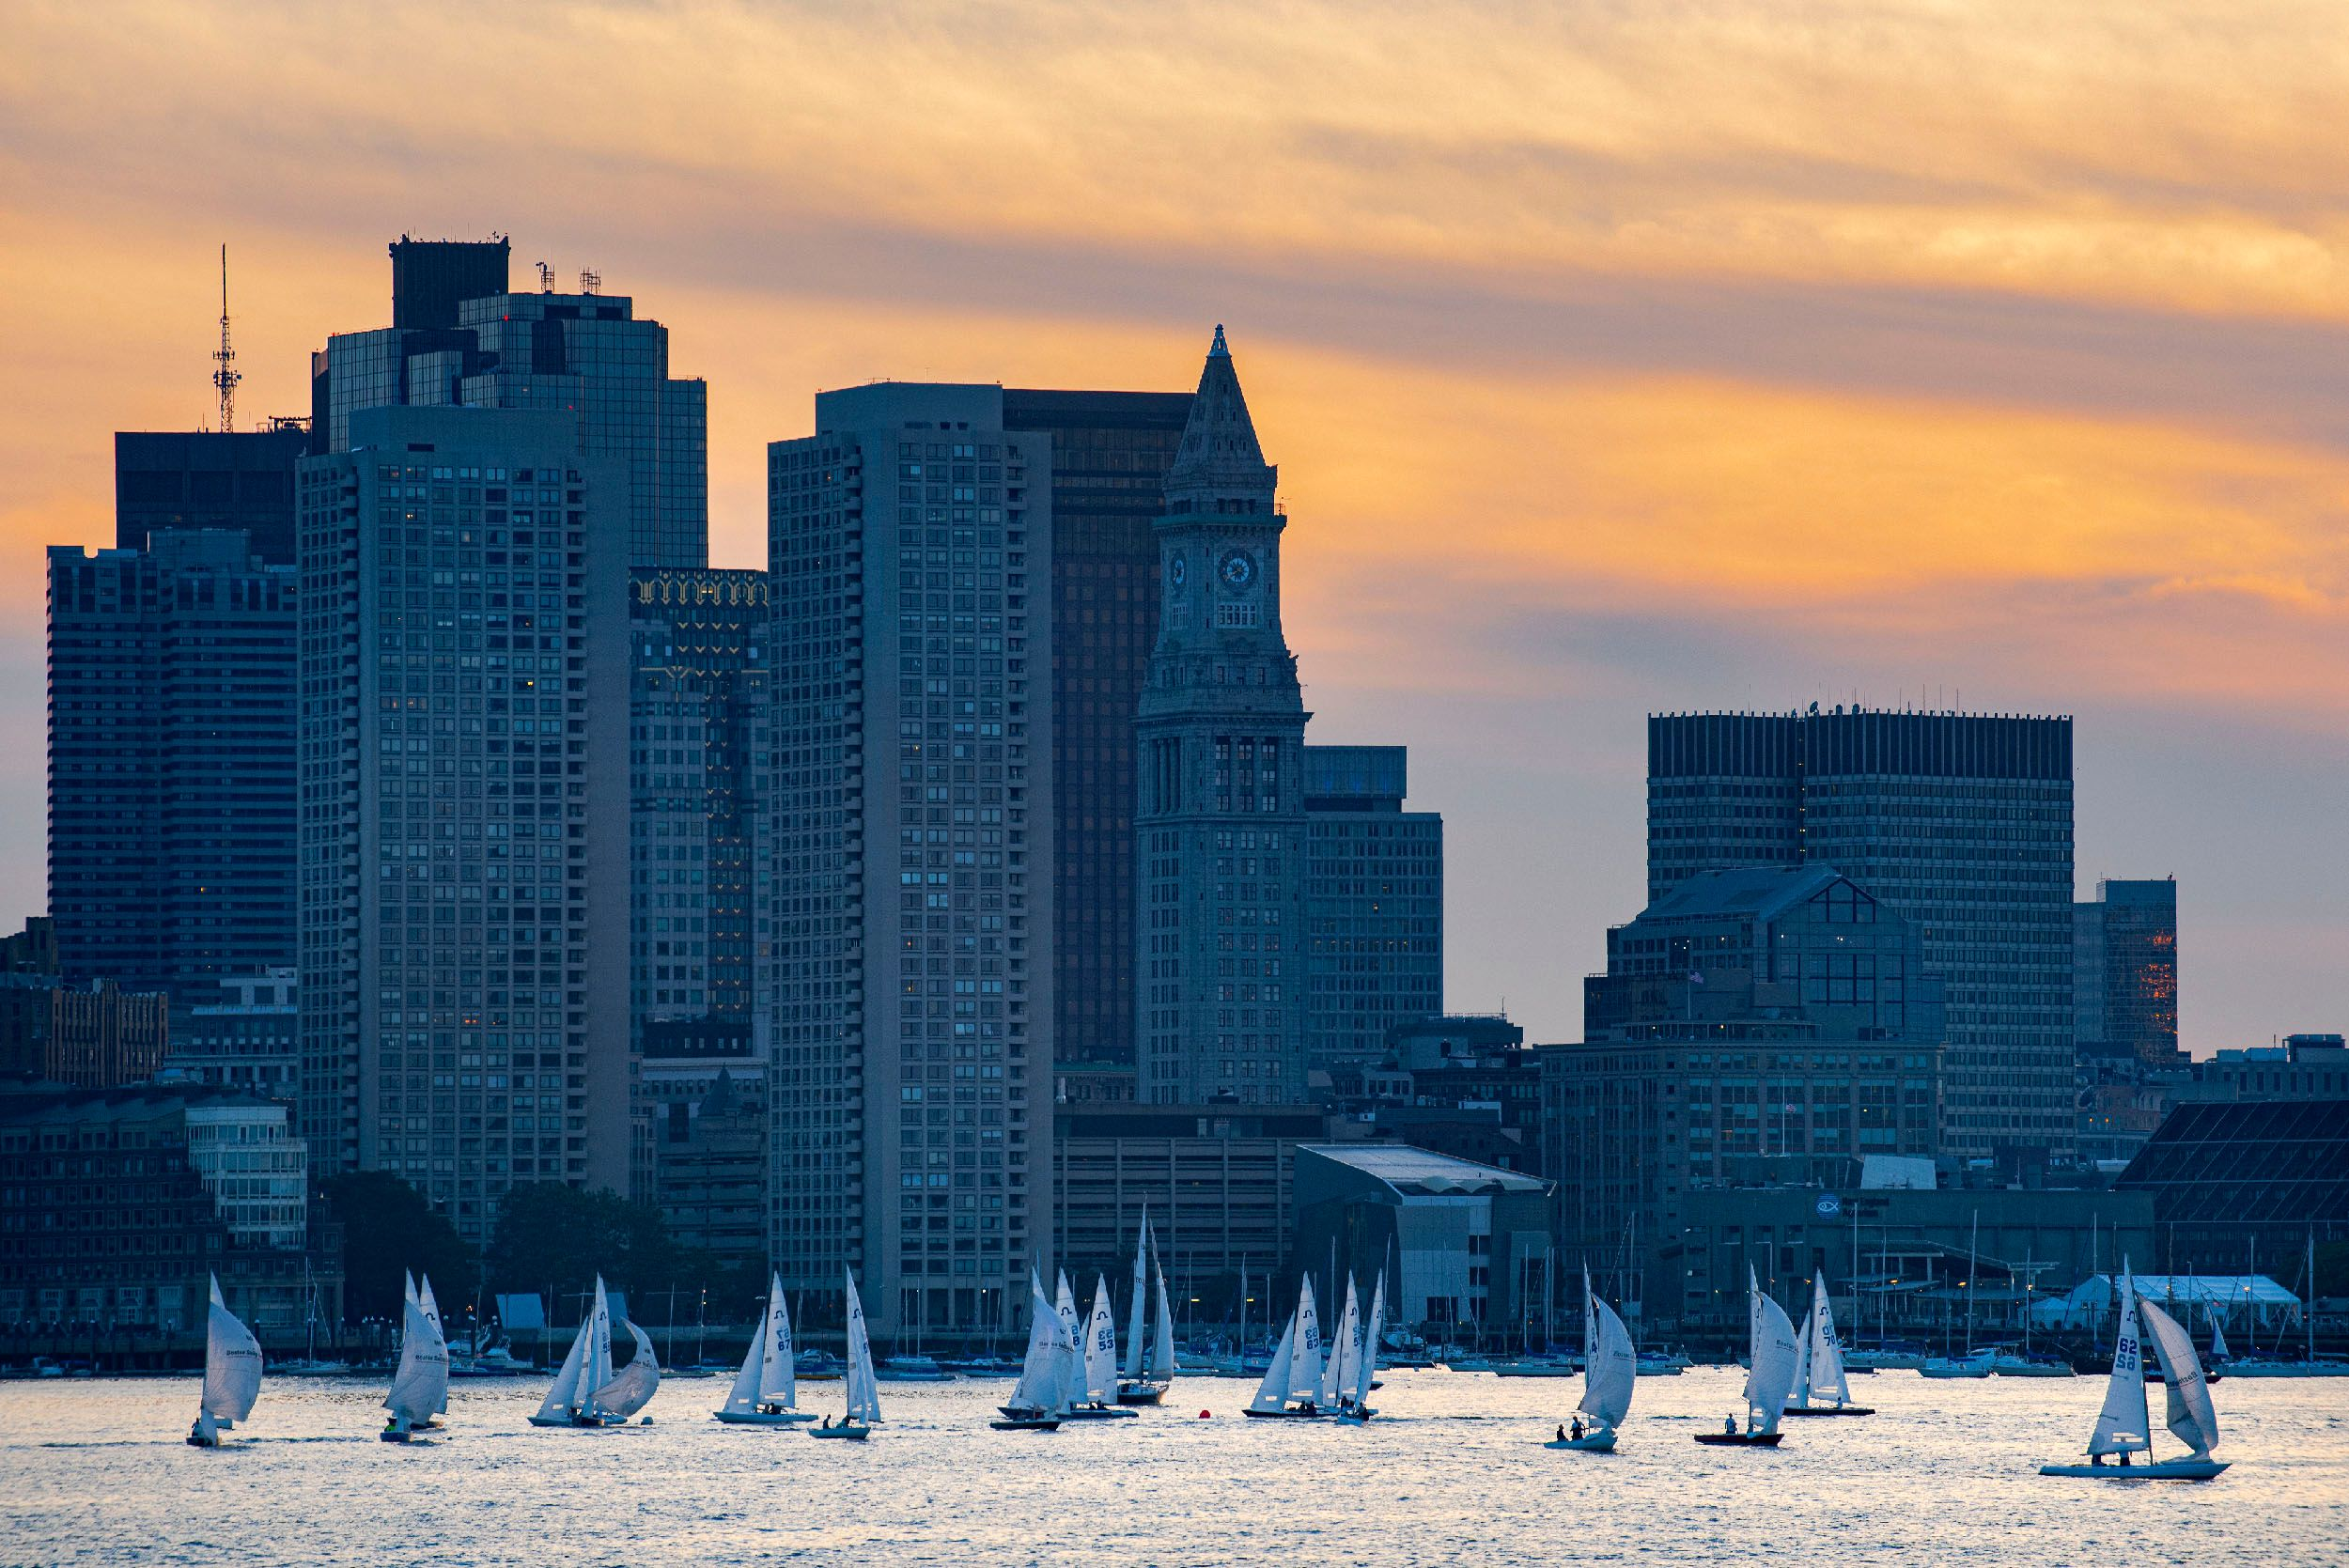 Boston Harbor at Sunset